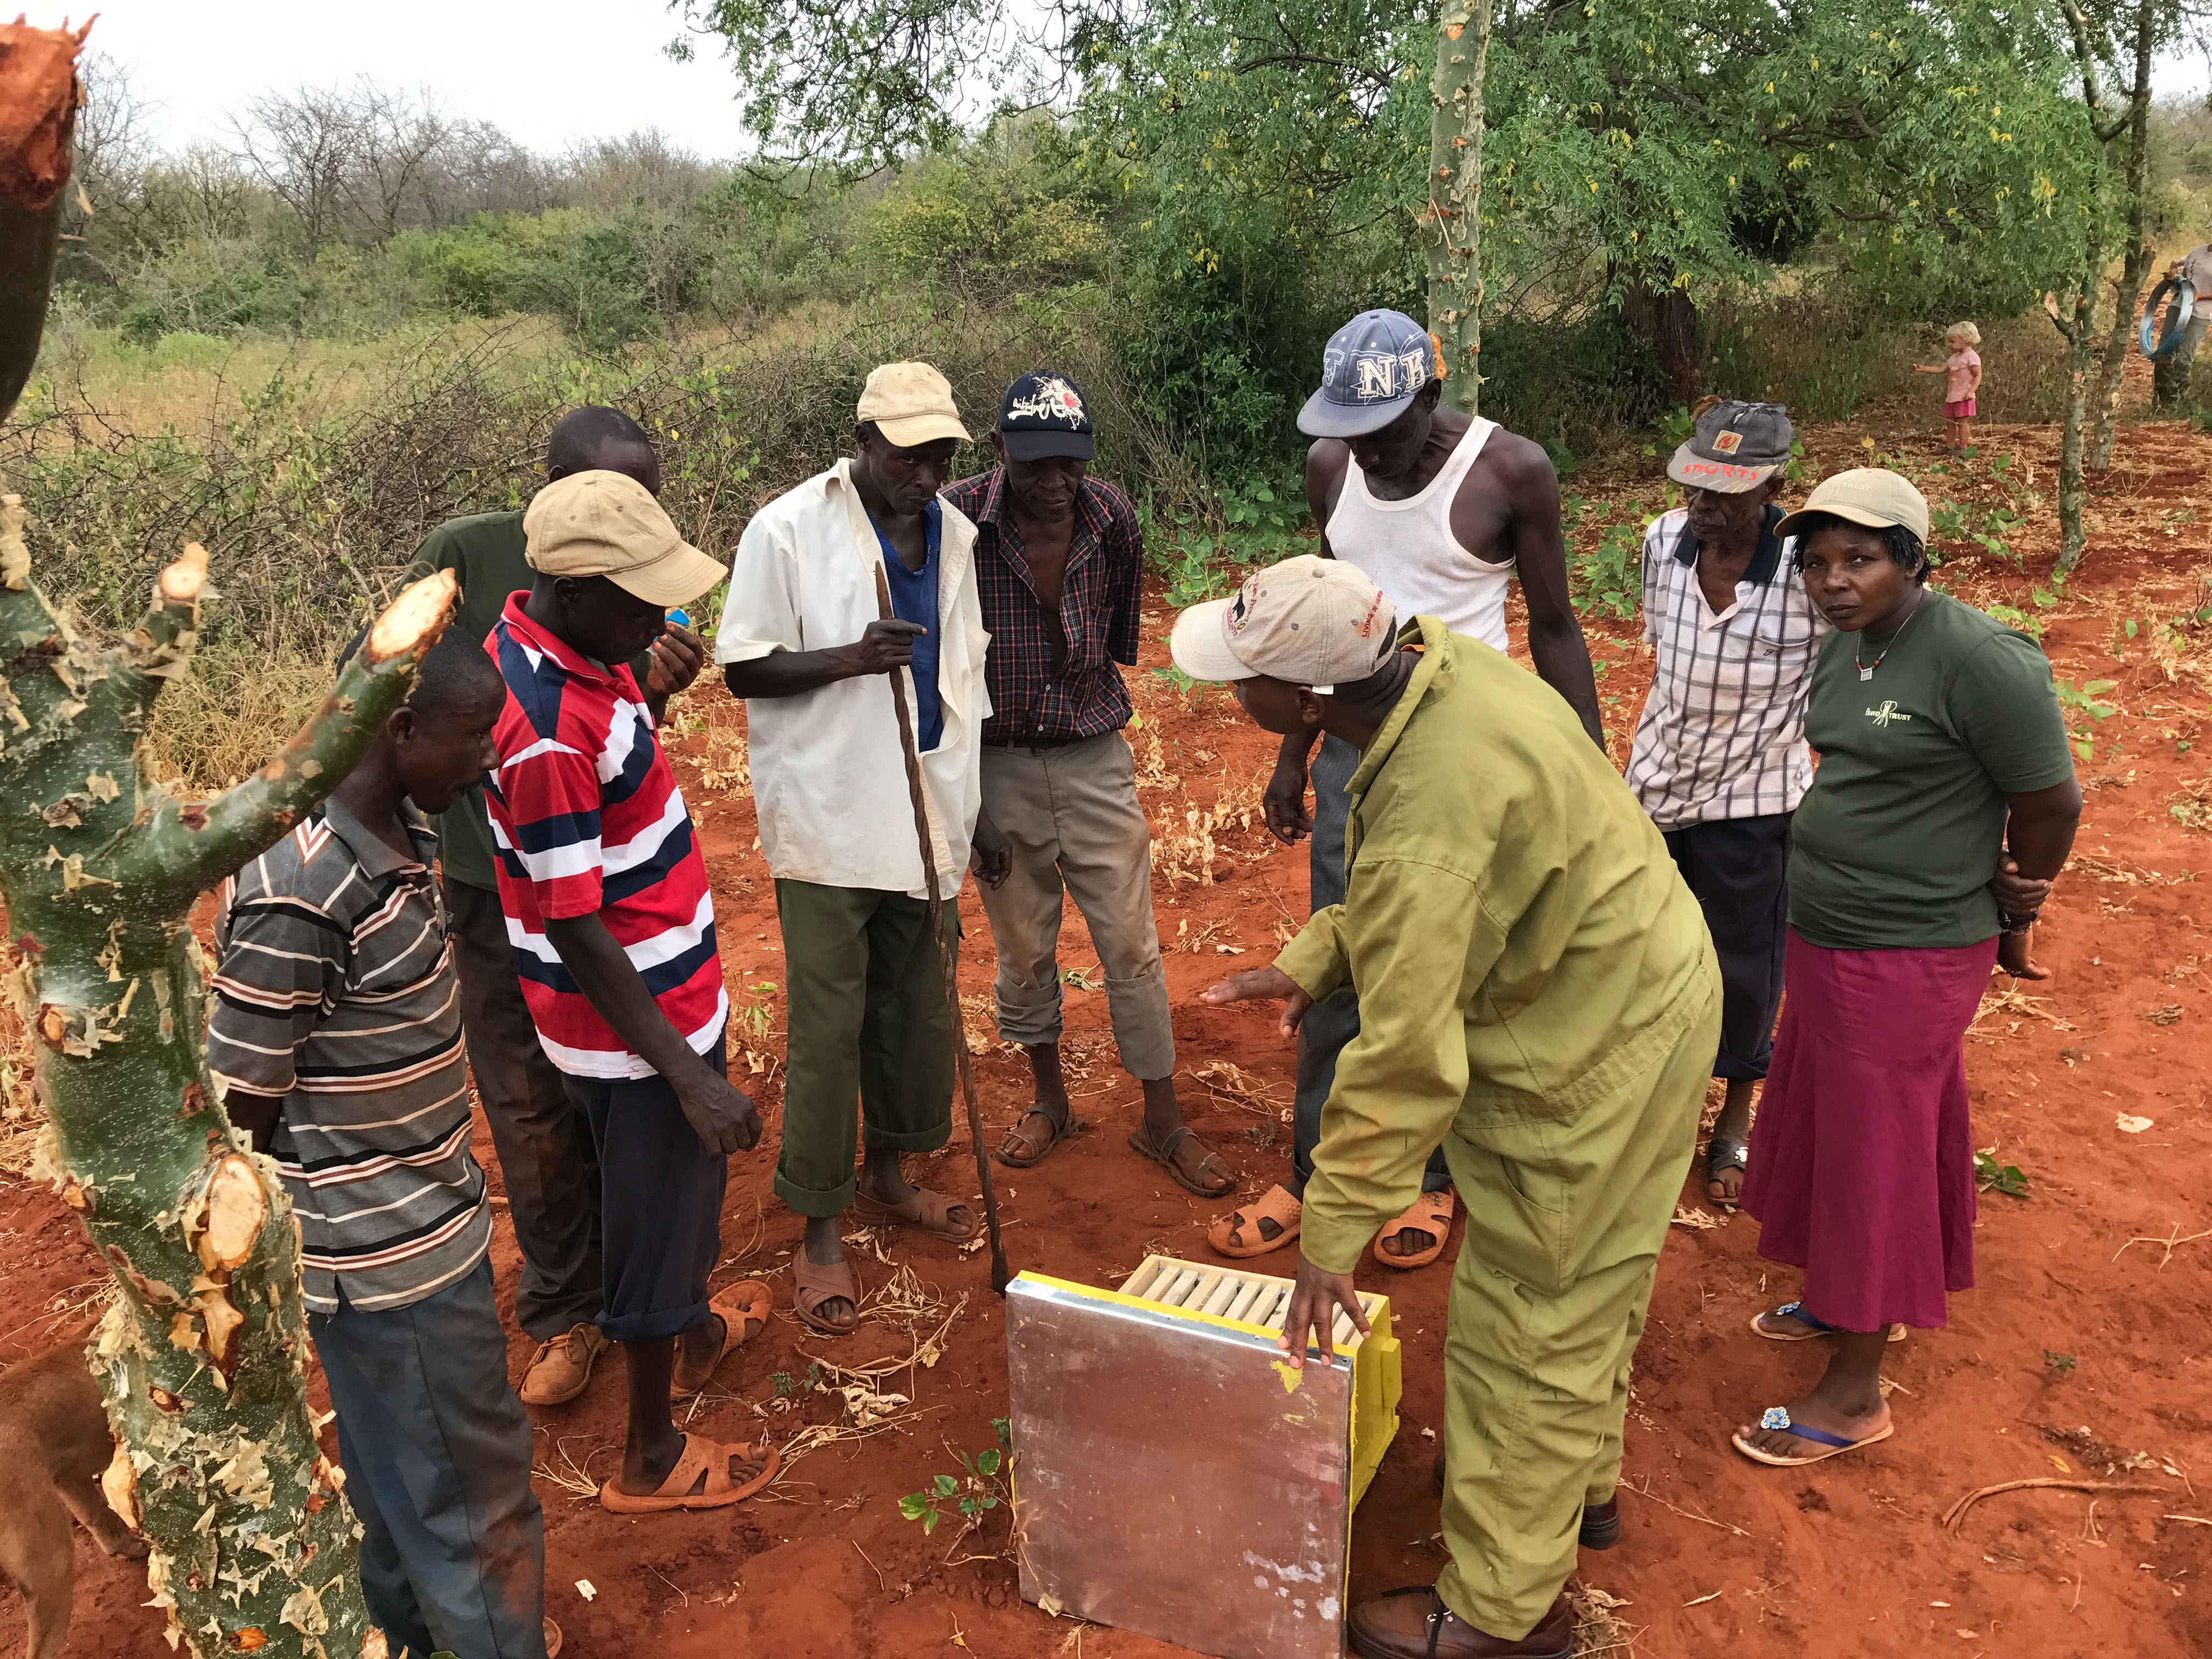 Emmanuel-teaching-the-farmers-about-beehives-during-beehive-fence-construction-in-Kamungi-Conservancy-©-2017-Lucy-King